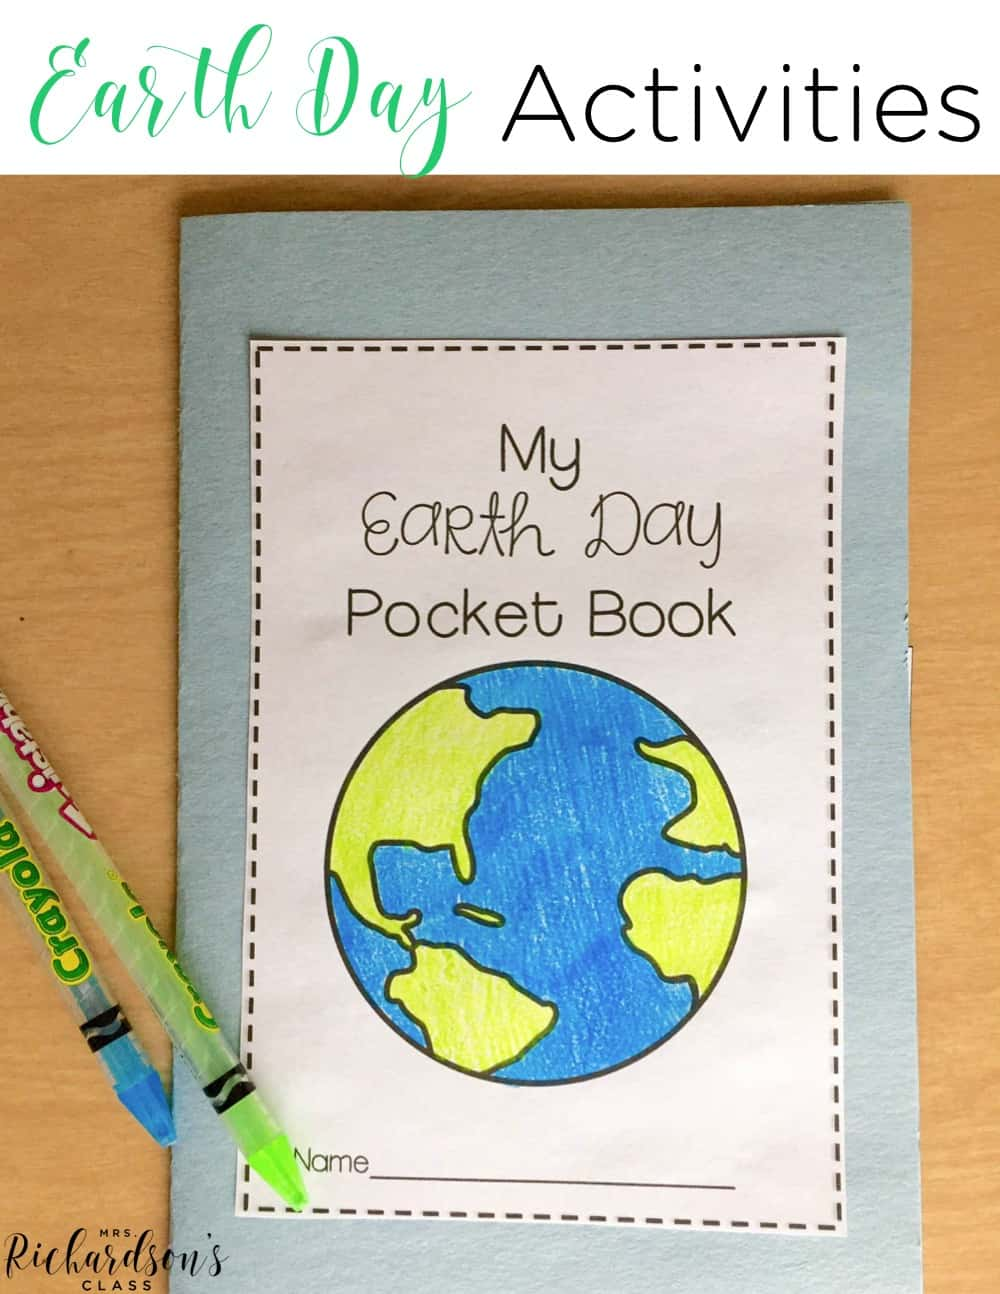 These earth day activities are engaging, interactive, and perfect for your first grade and kindergarten students! They include a unit plan, lesson plan tips, help integrate reading and writing, and are sure to be fun for your learners! Everything is laid out! #earthdayactivities #homeschool #kindergarten #firstgrade #earthday